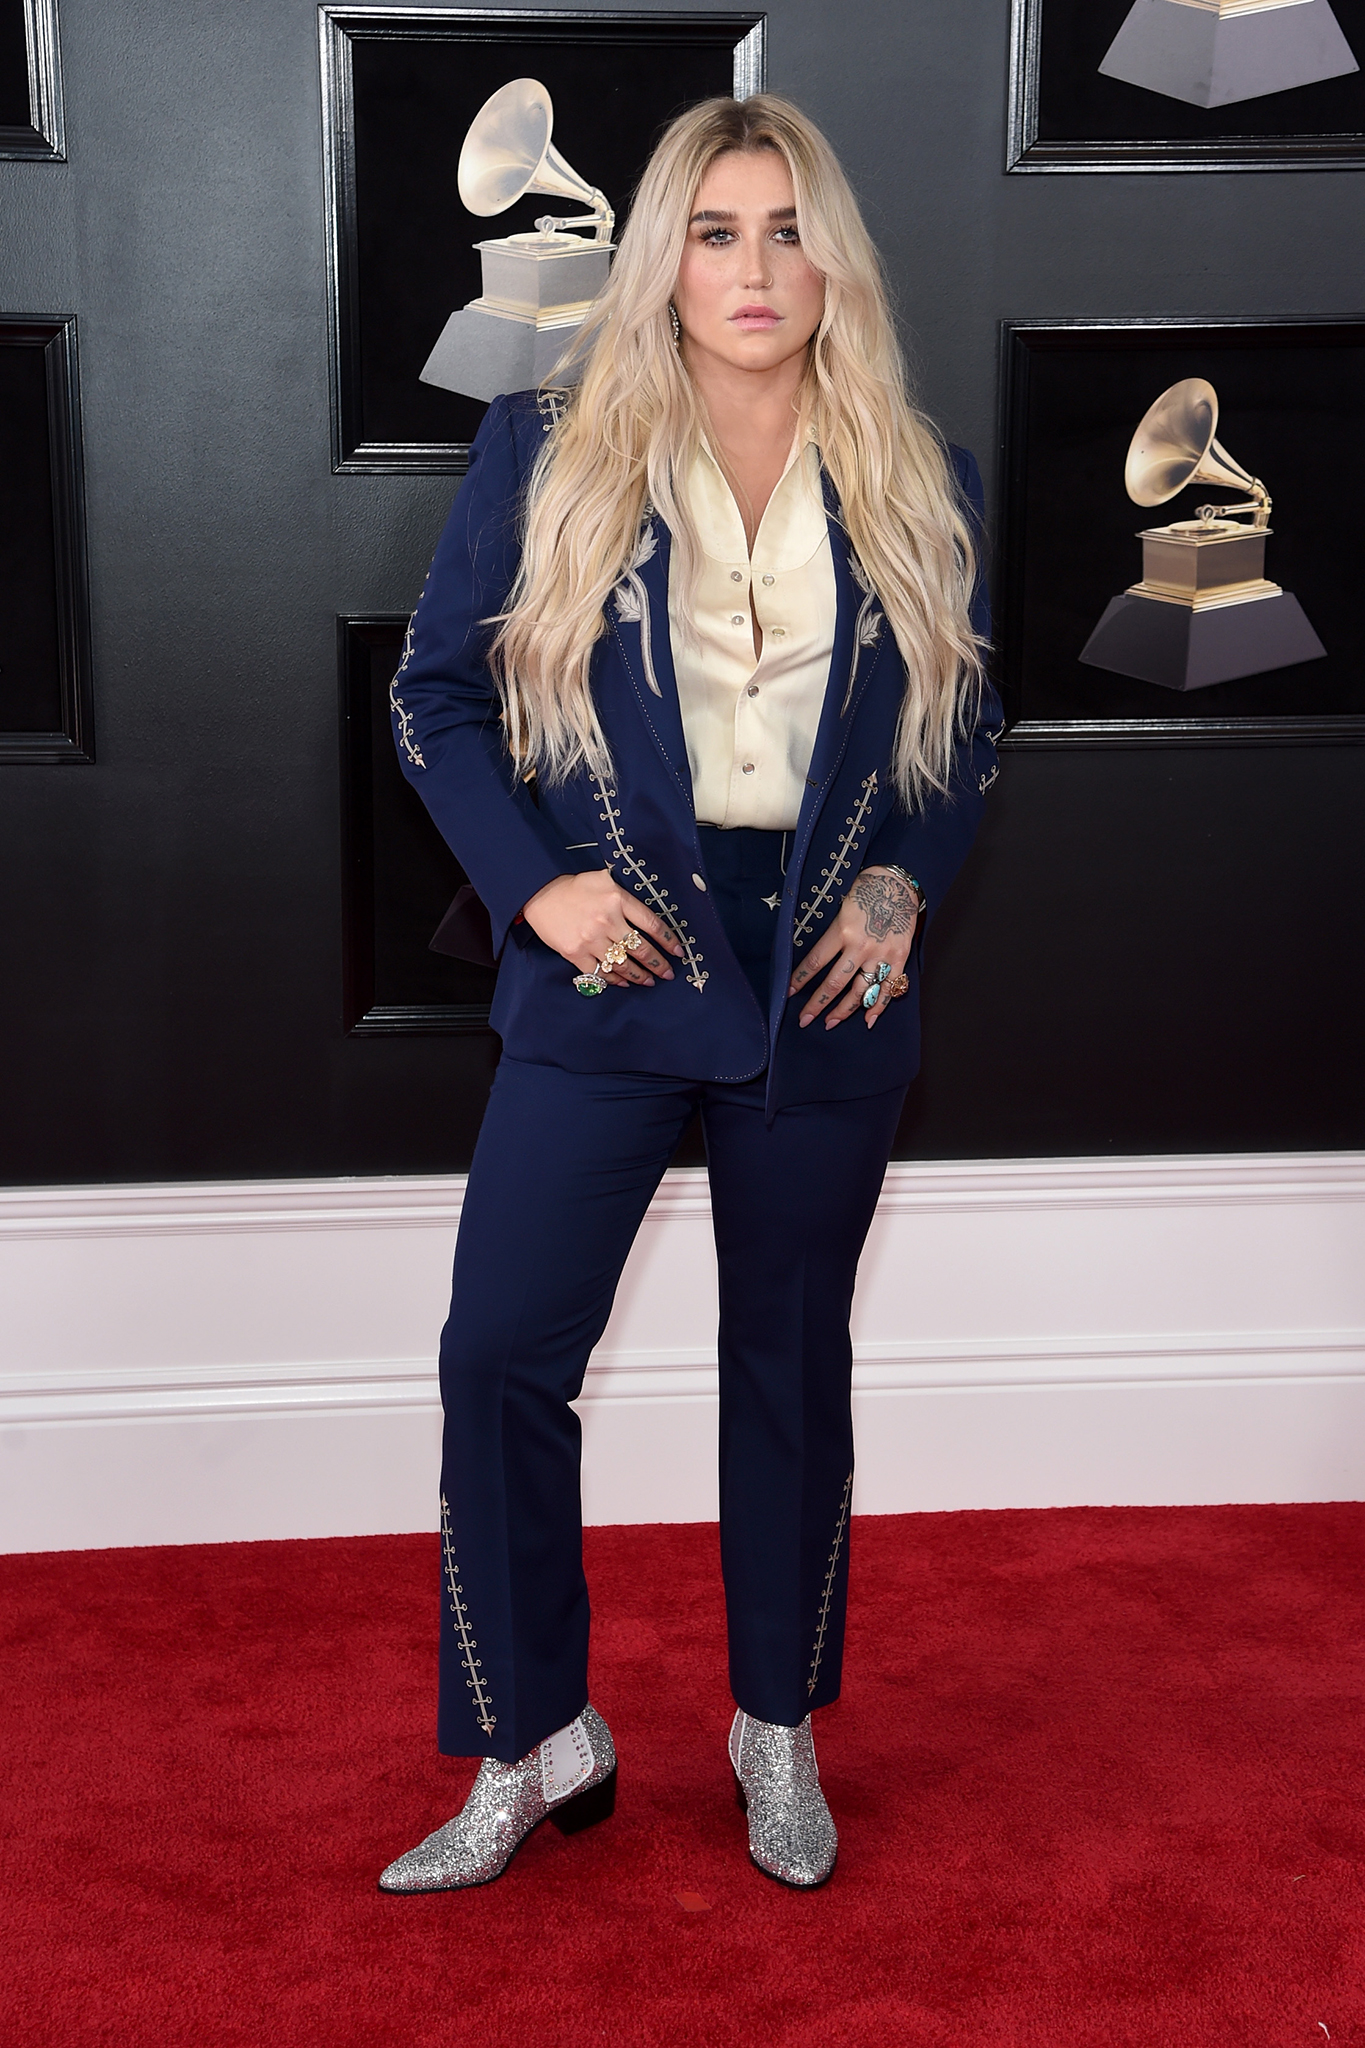 Recording artist Kesha attends the 60th Annual GRAMMY Awards at Madison Square Garden on January 28, 2018 in New York City.